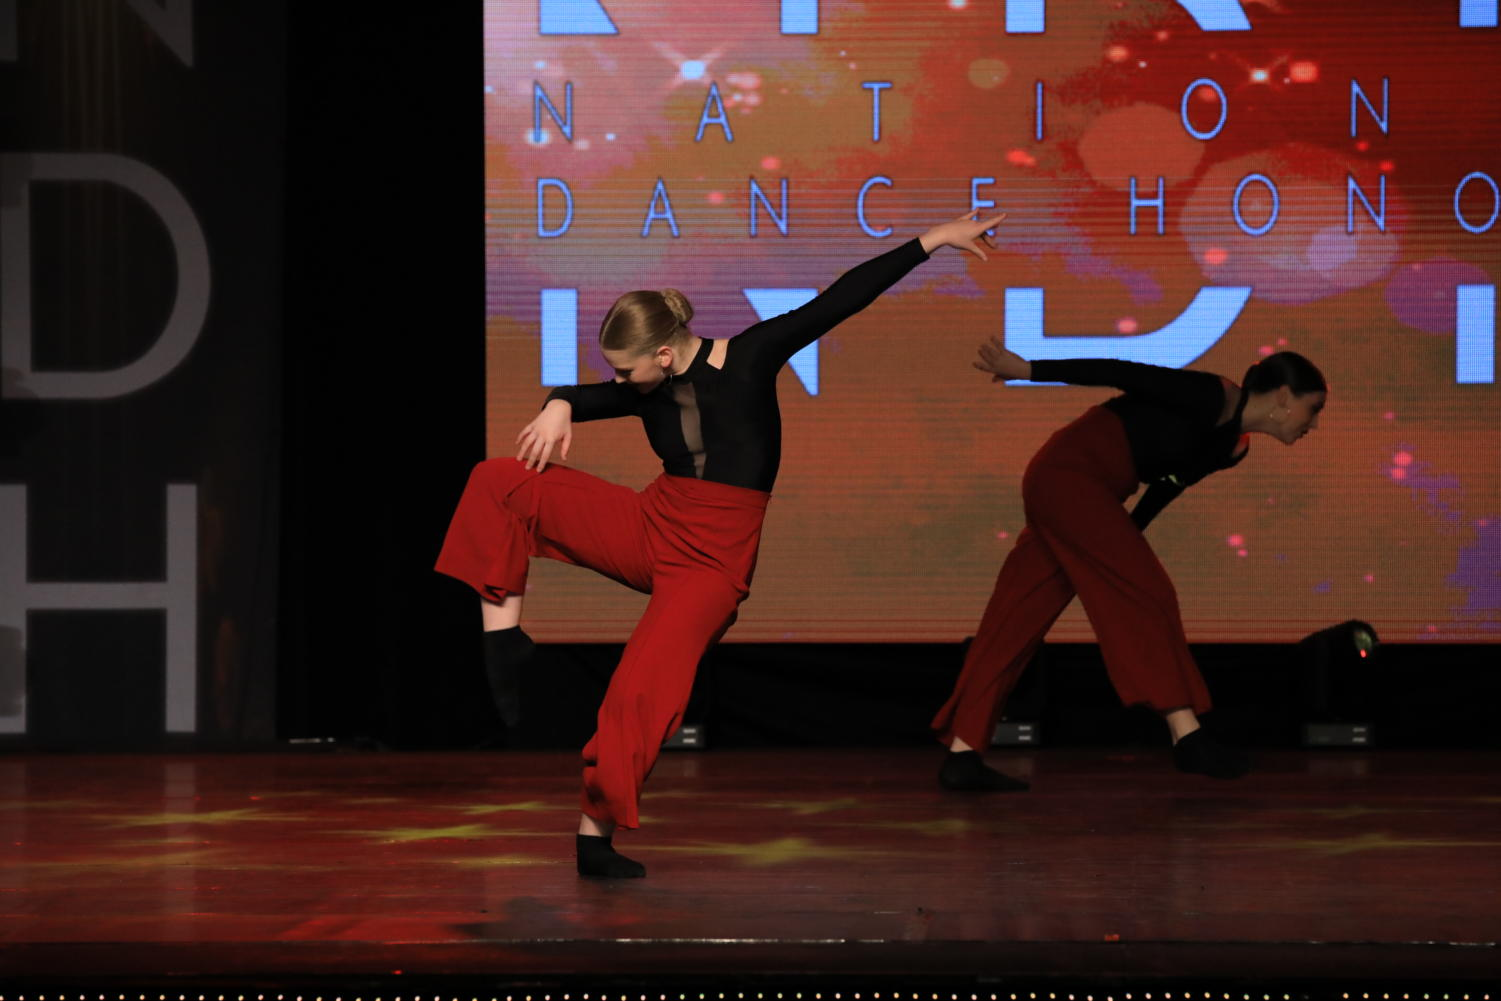 Sophomore Maddie Moats dances on stage in Las Vegas, Nevada, for the National Dance Honors competition. She has danced for 13 years. Moats  said she enjoys dancing on stage, she also loves to spend time training in her dance studio.